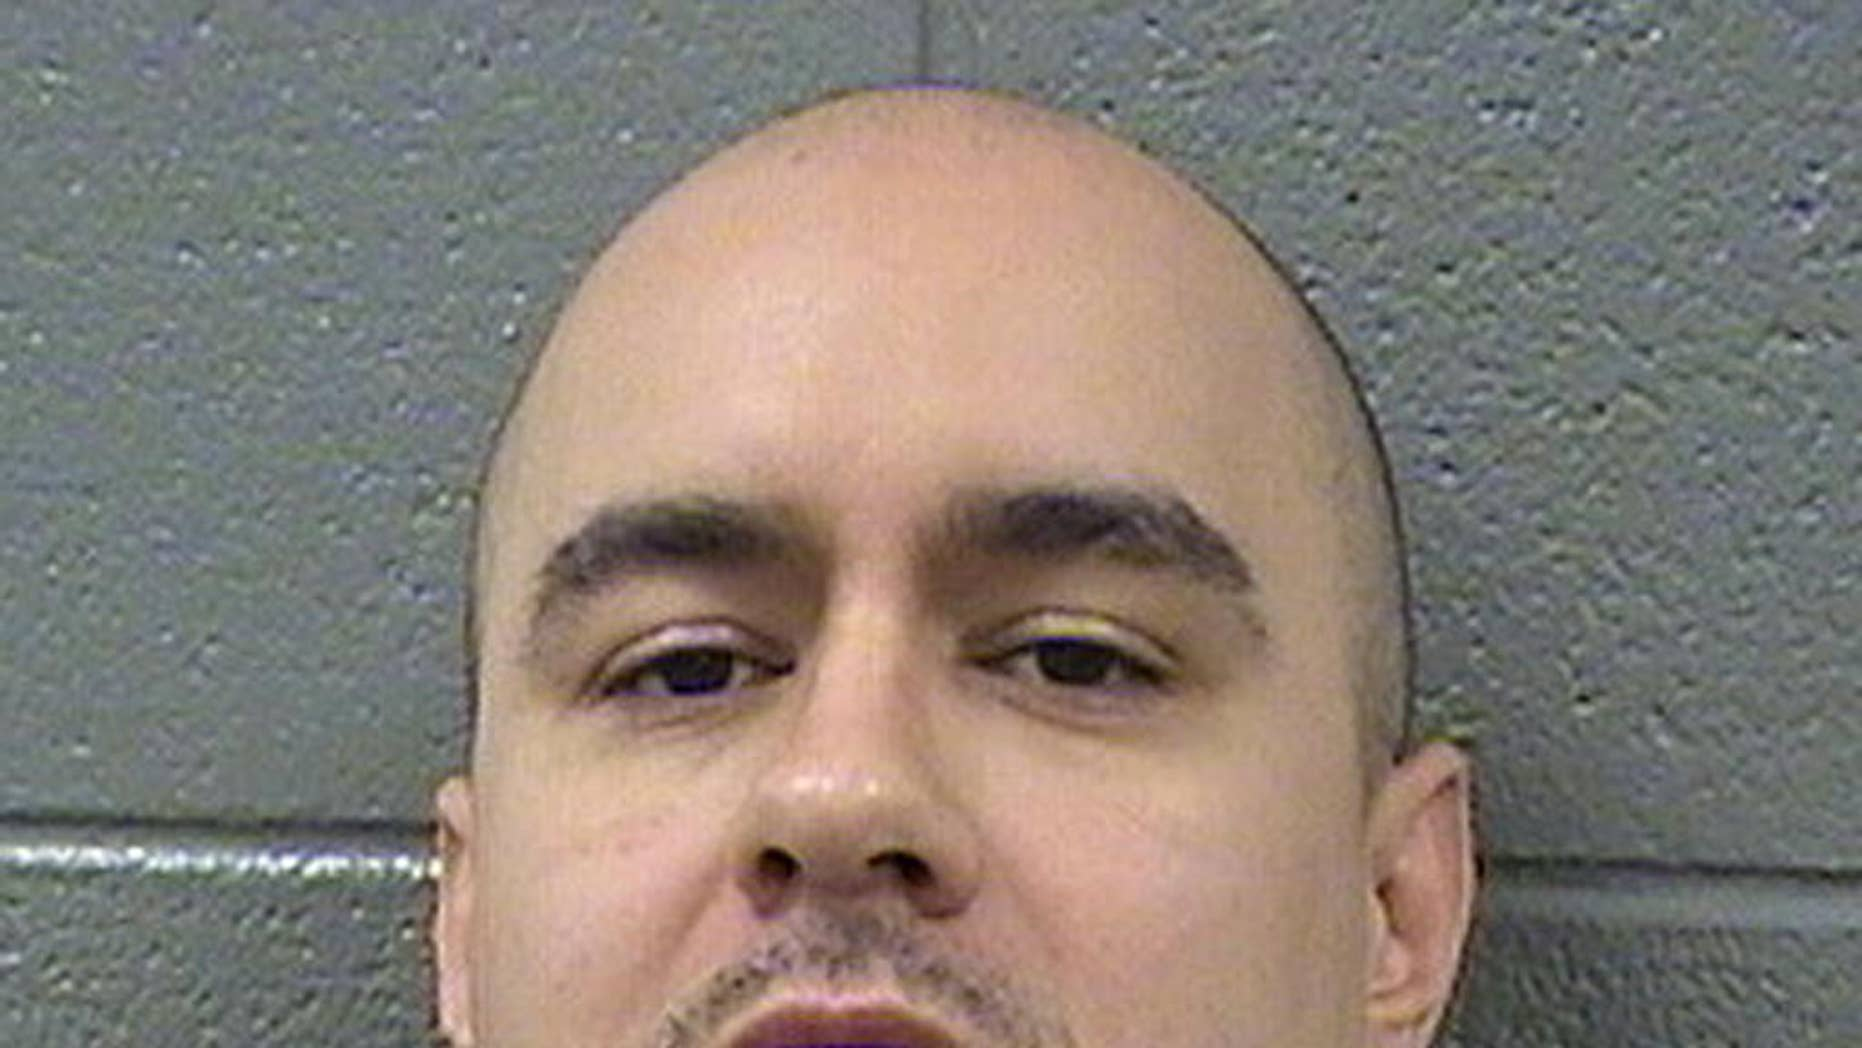 This undated photo provided by the Cook County Sheriff's Department shows Thaddeus Jimenez. Jimenez, who won a $25 million award in 2012 for a wrongful murder conviction only to spend it on rebuilding his Simon City Royals street gang was sentenced to nine years in prison by a federal judge Thursday March. 9, 2017, in Chicago. U.S. District Judge Harry Leinenweber sentenced Jimenez after prosecutors showed a video of Jimenez calmly shooting a former gang member in both legs. (Cook County Sheriff's Department via AP)